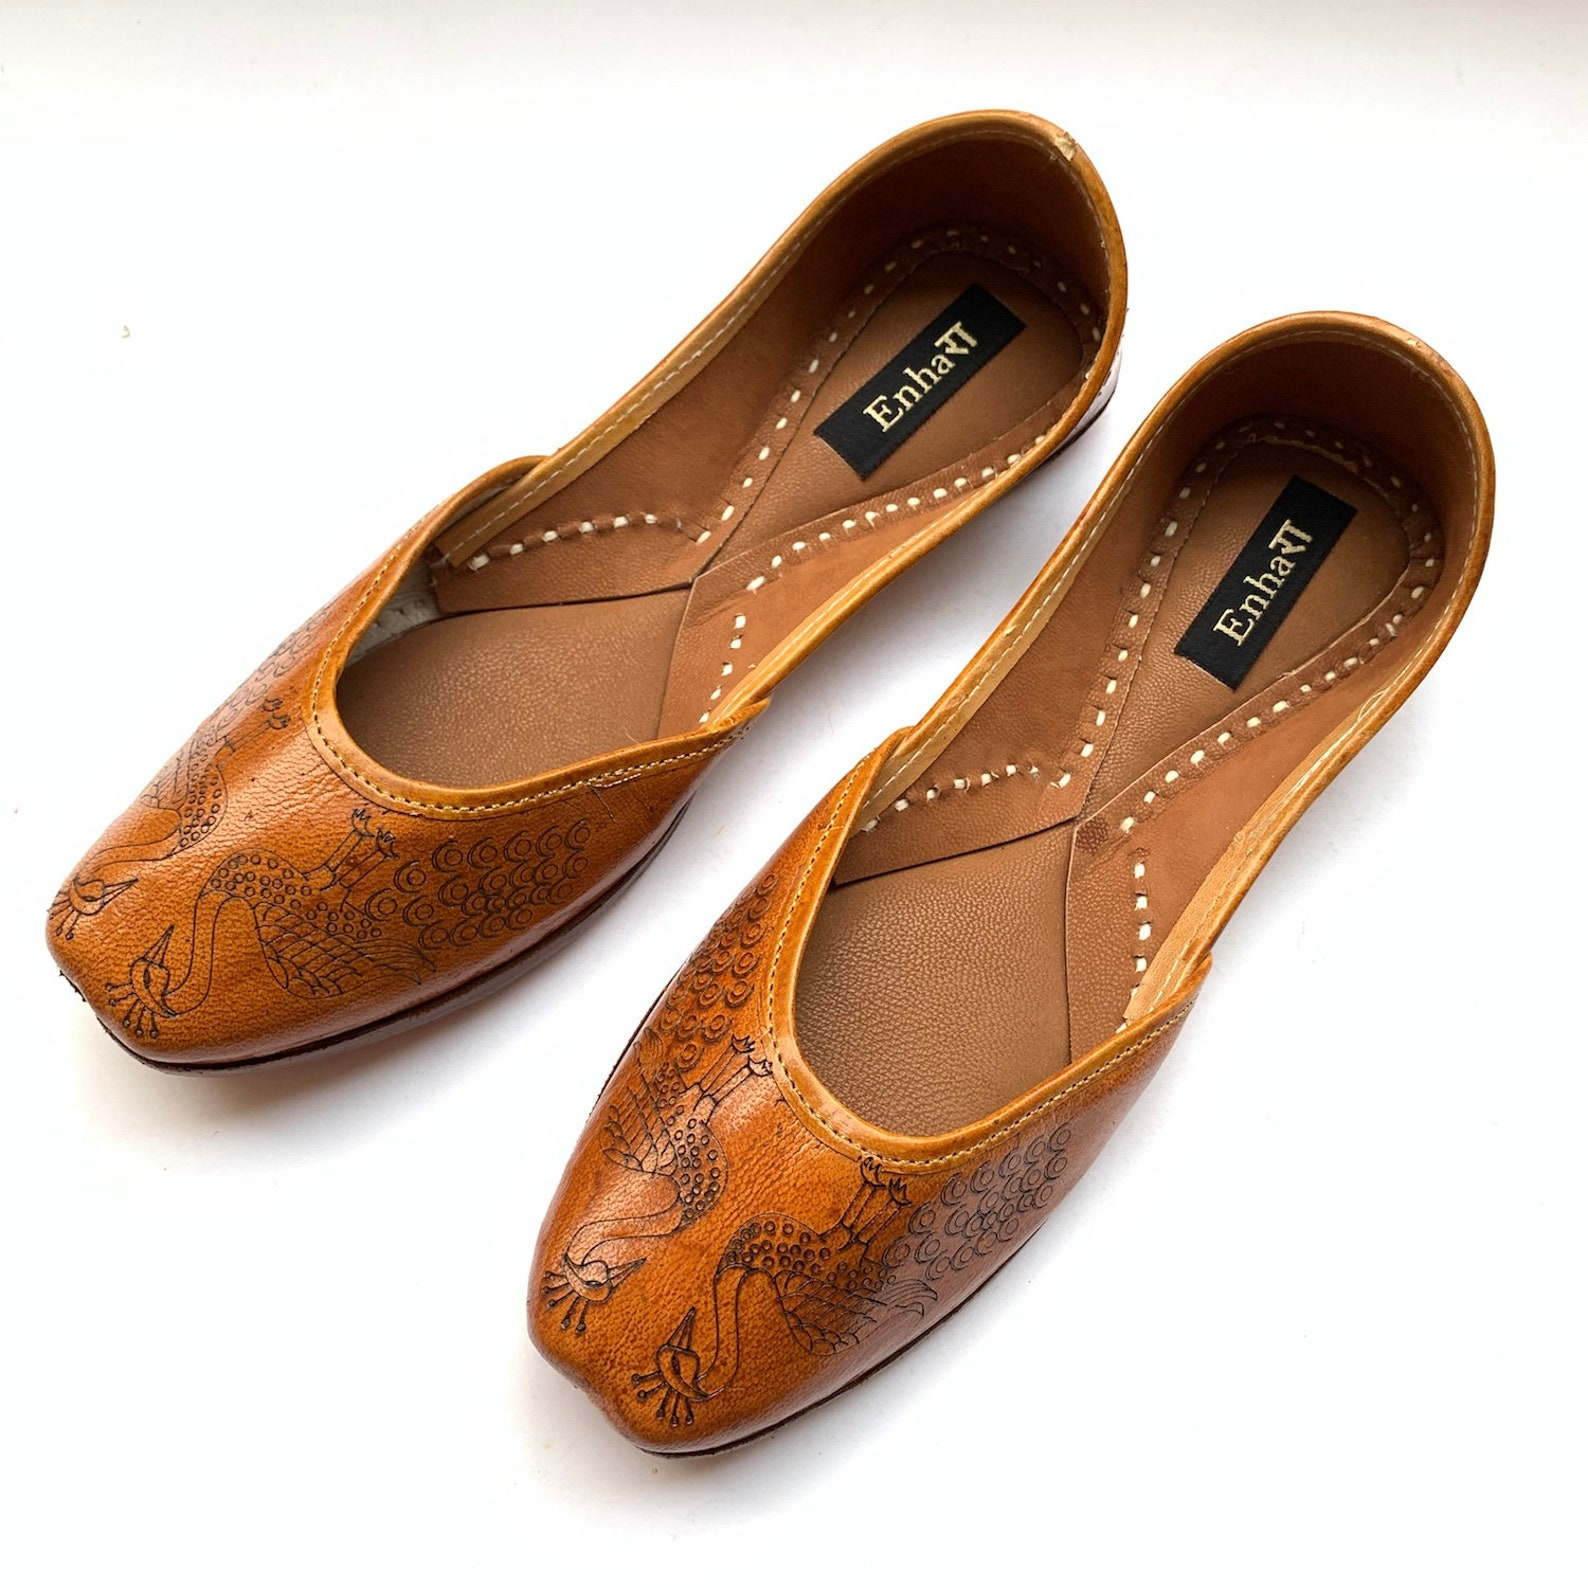 one of a kind peacock engraved womens tan brown leather ballet flat shoes, indian shoes, handmade designer shoes/juttis or mojar